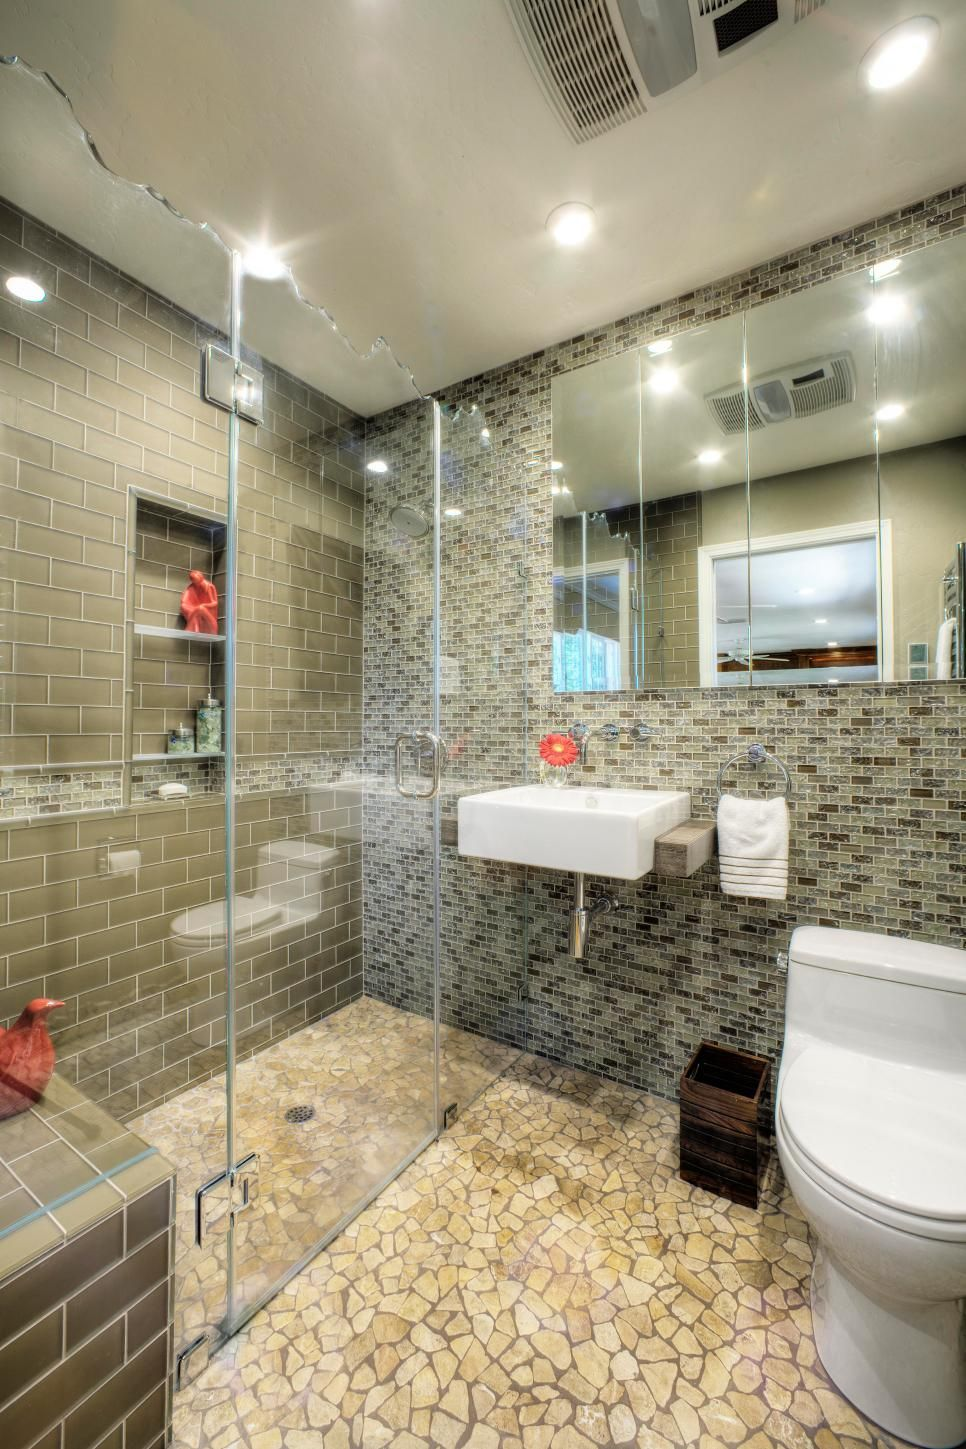 Bathroom Design Trend NoThreshold Showers Small Spaces Bath - Flip flop bathroom decor for small bathroom ideas